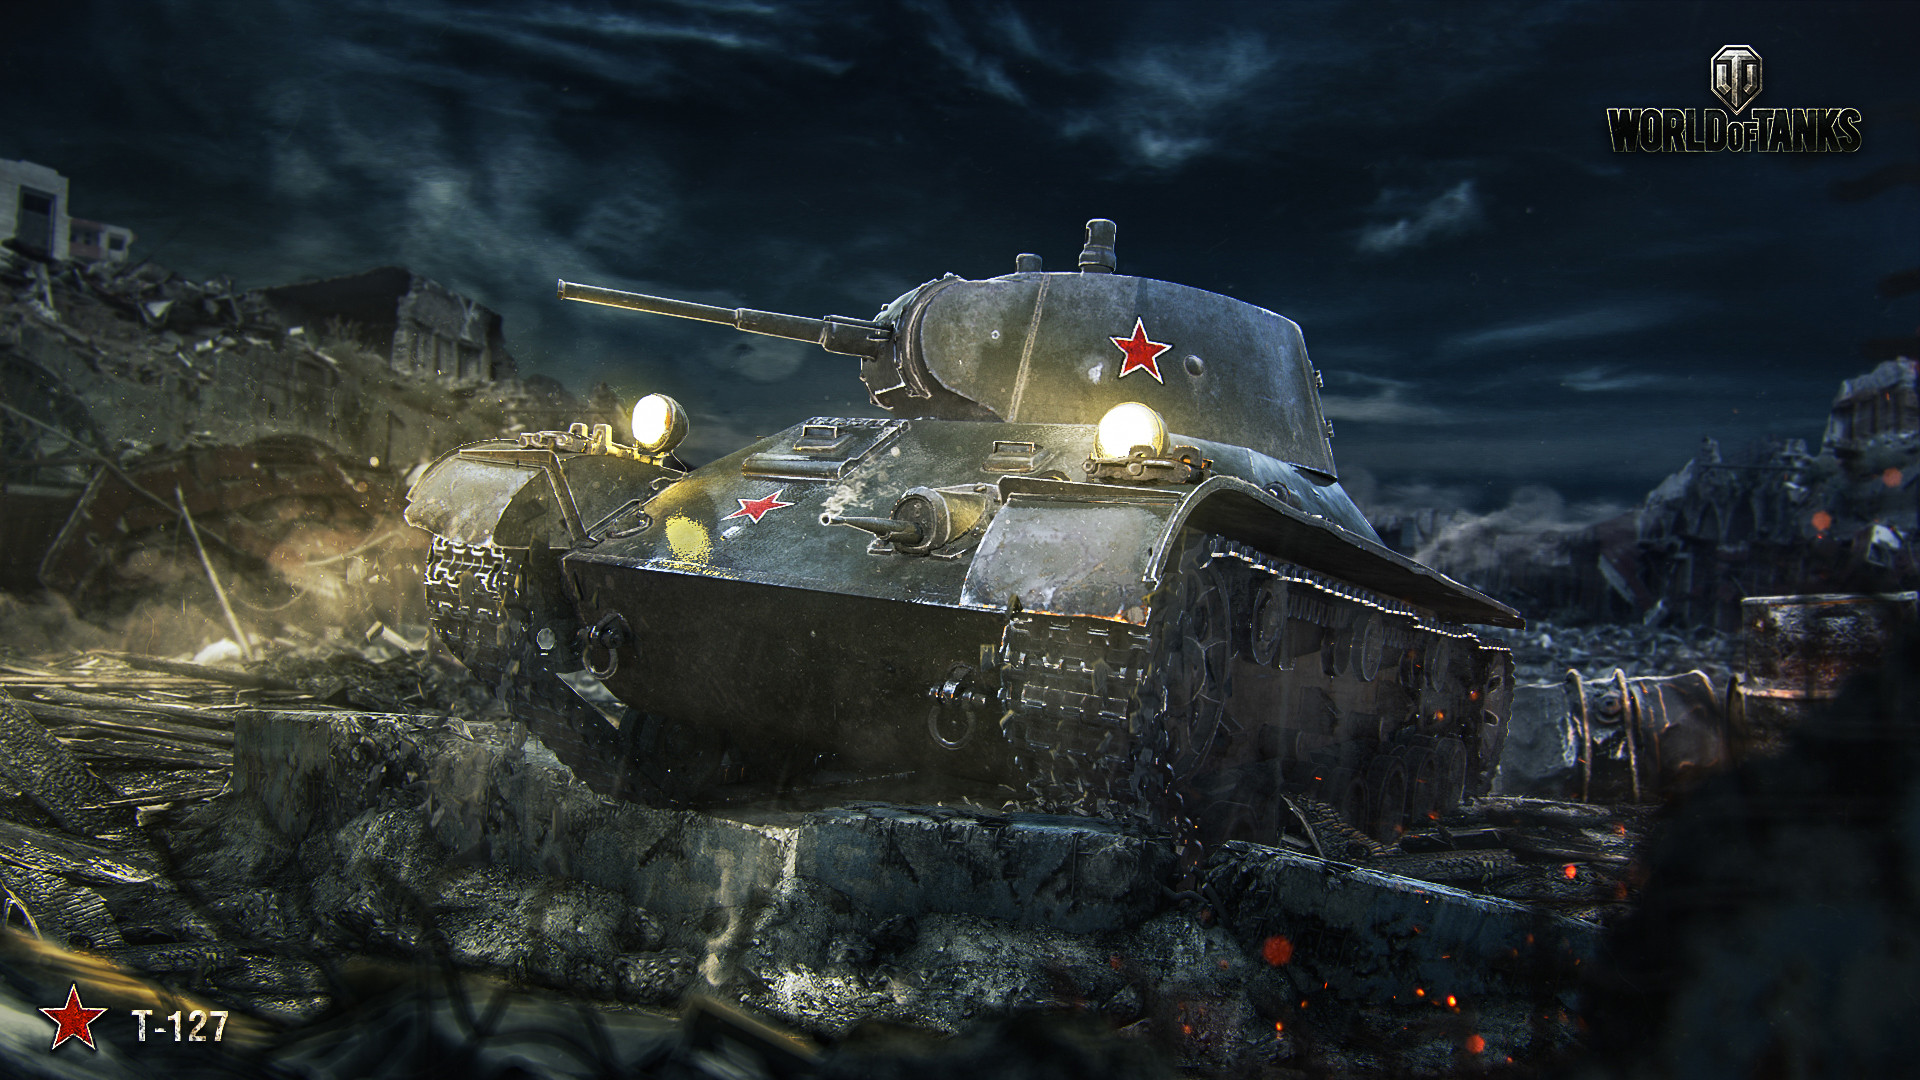 Invite World of Tanks 1450 Gold + T-127 for Beginners